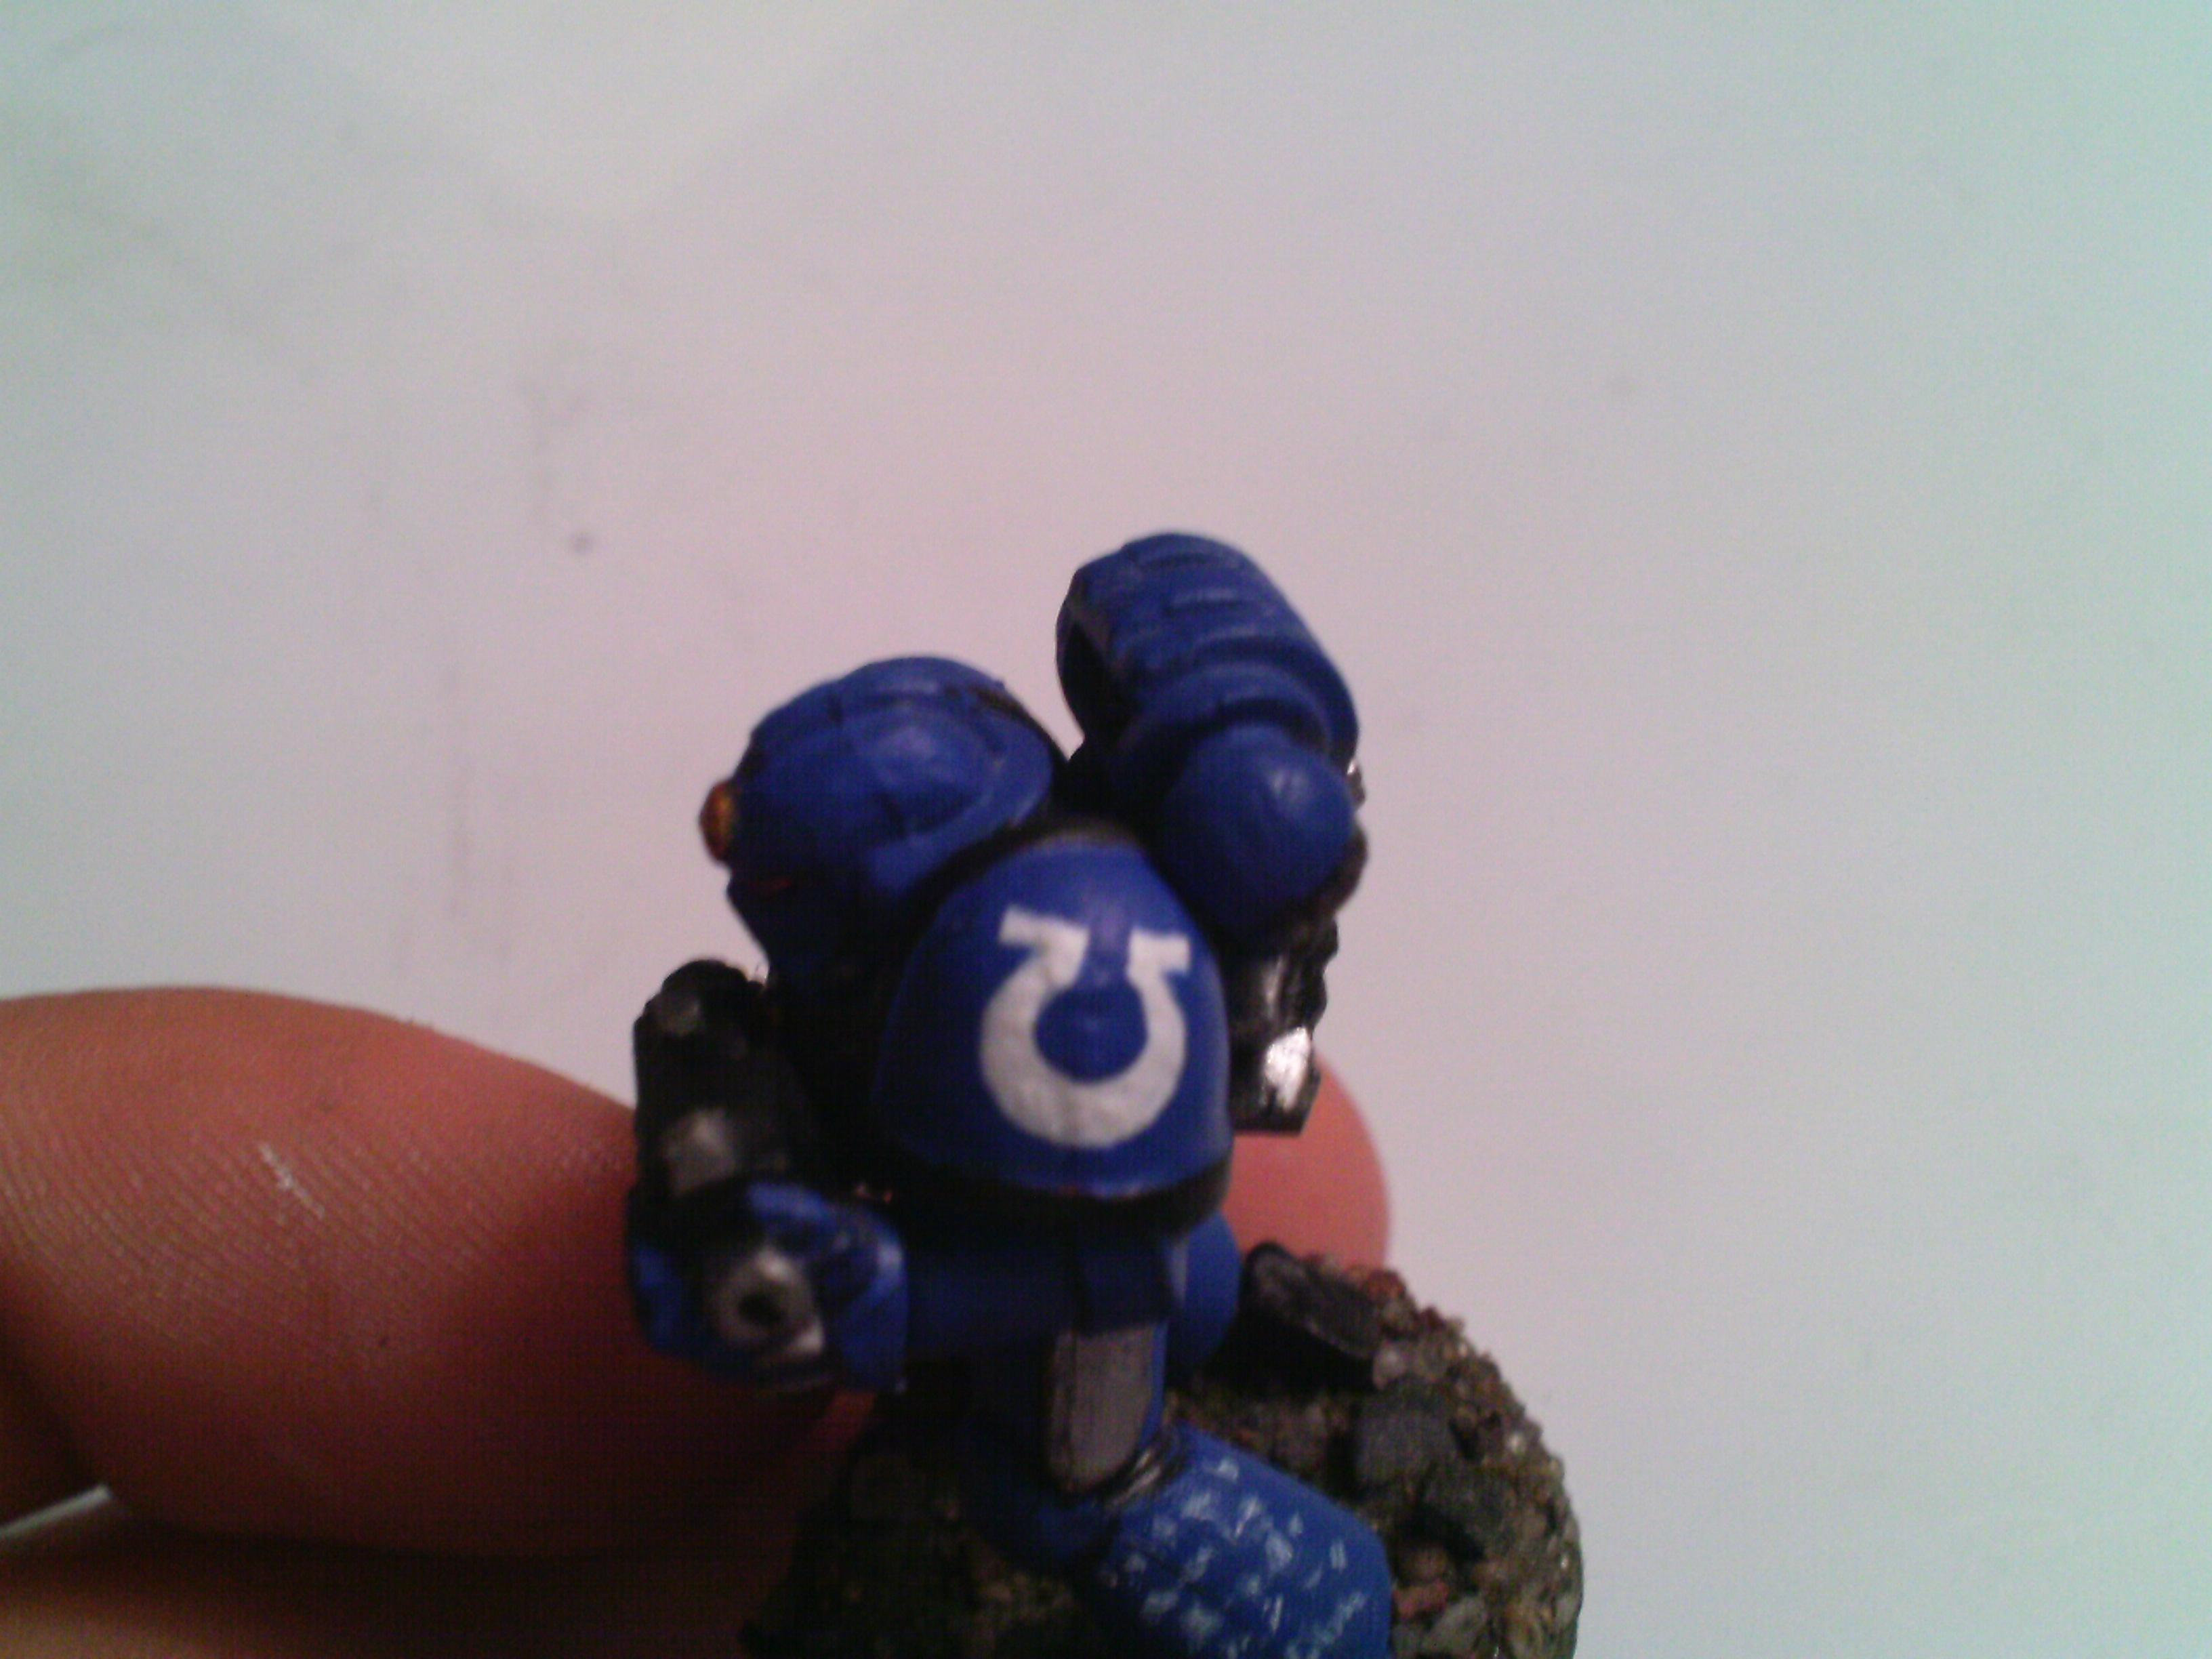 Then I go over it again in blue and edge out the details